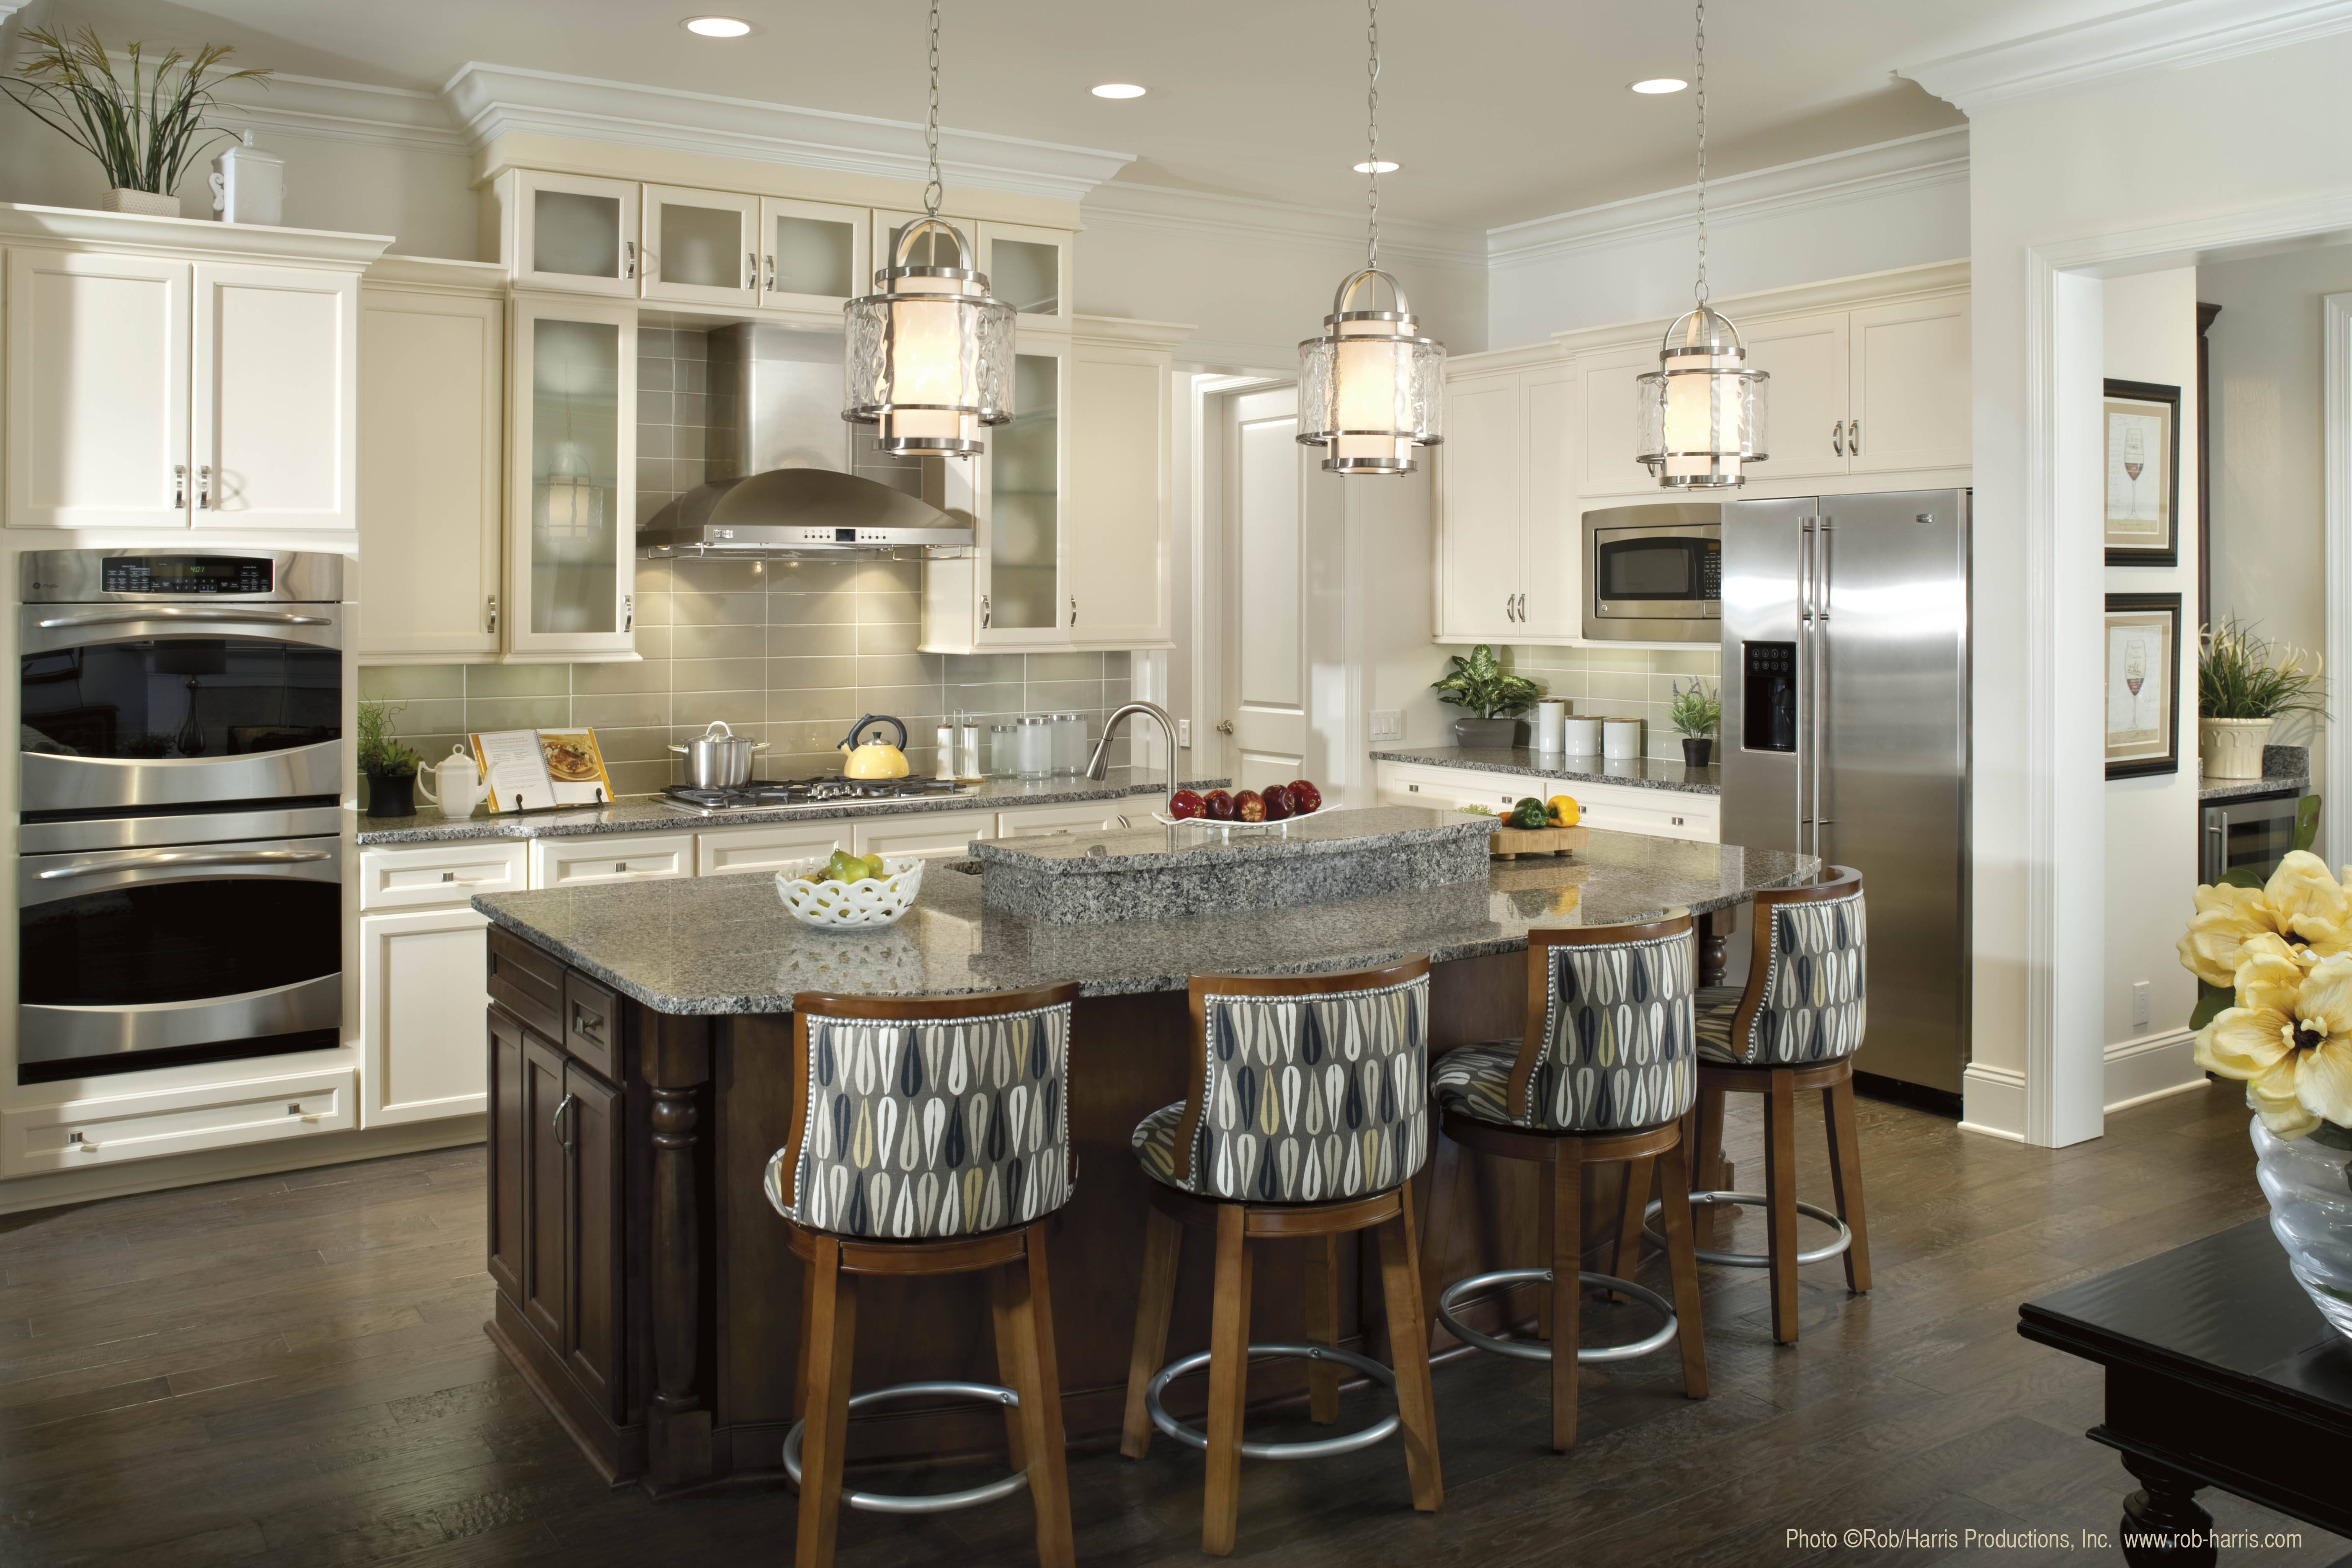 Lovable Pendant Lighting Kitchen Island For Room Decor Plan Throughout Single Pendant Lighting For Kitchen Island (View 9 of 15)